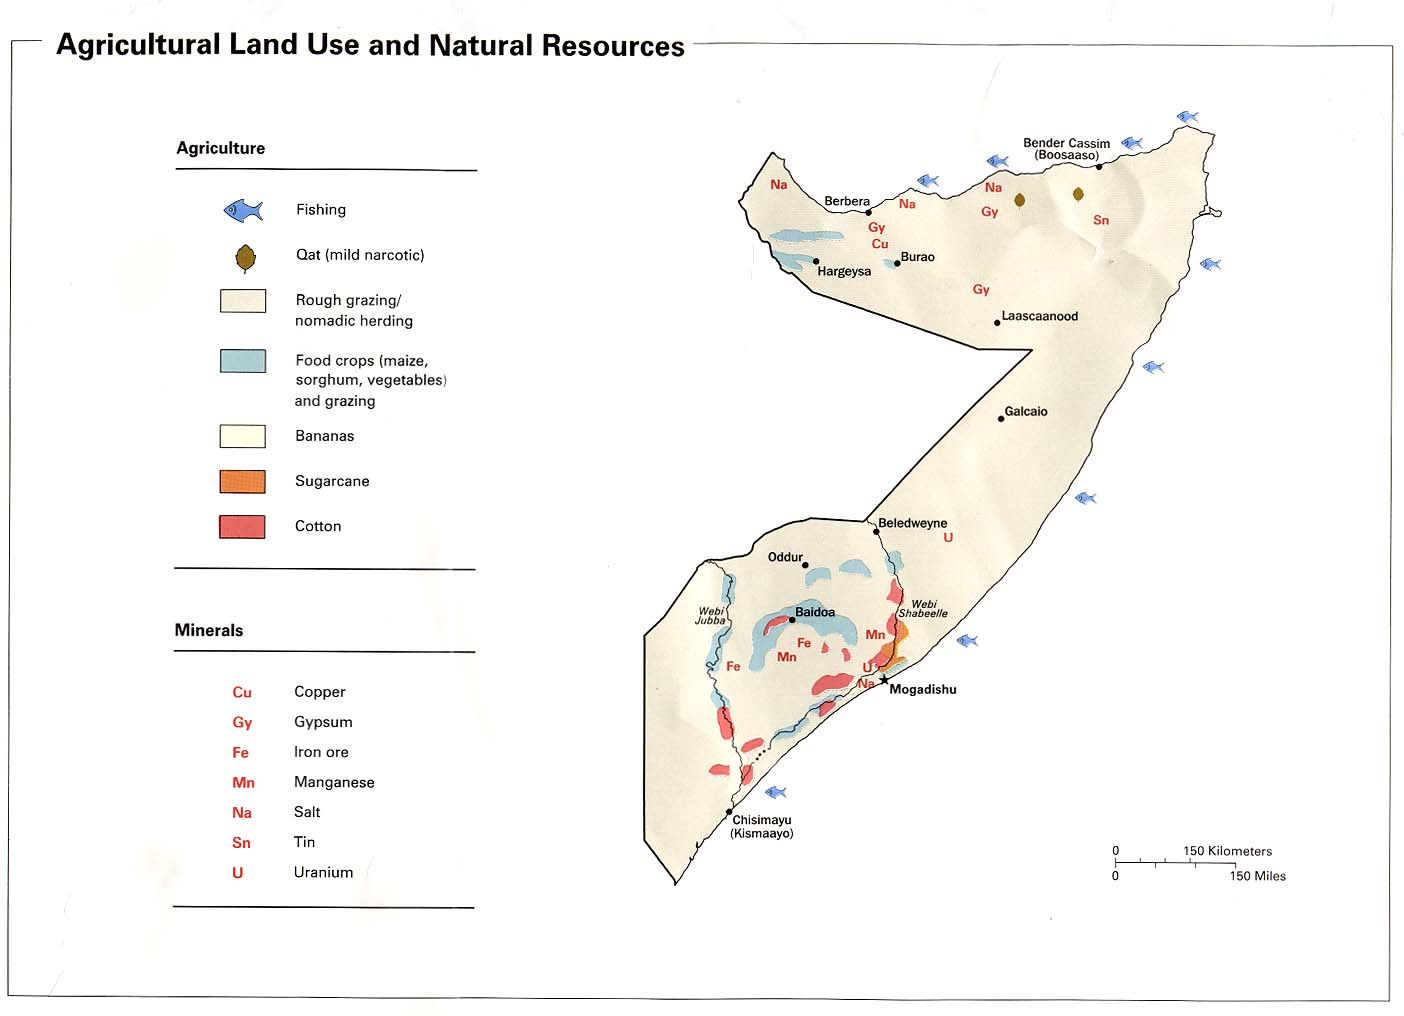 Map Of Africa Natural Resources.1992 Agricultural Land Use And Natural Resources From Somalia